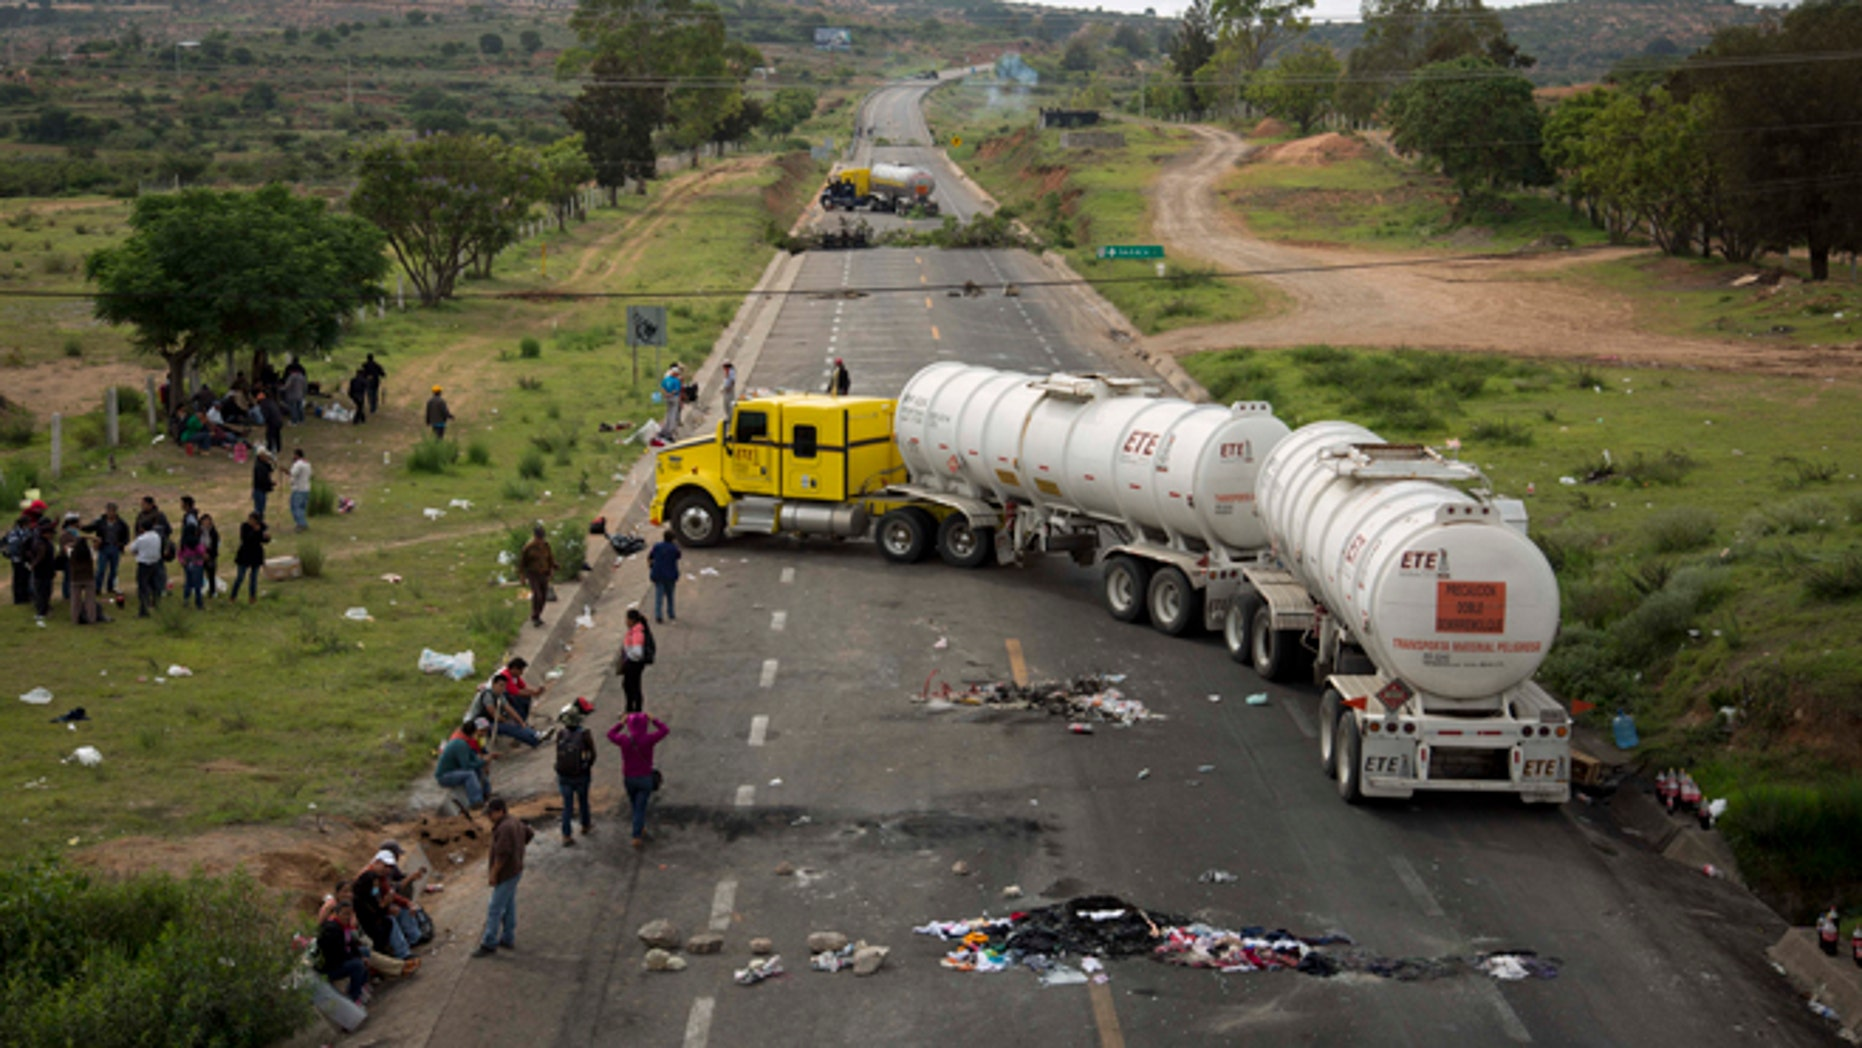 Protesters stand beside trucks blocking the highway in the state of Oaxaca, near the town of Nochixtlan, Mexico, Monday, June 20, 2016. Mexican police say few teachers were involved in violence at a weekend highway protest in the southern state of Oaxaca in which six people died. The teachers are protesting against plans to overhaul the country's education system which include federally mandated teacher evaluations. (AP Photo/Eduardo Verdugo)